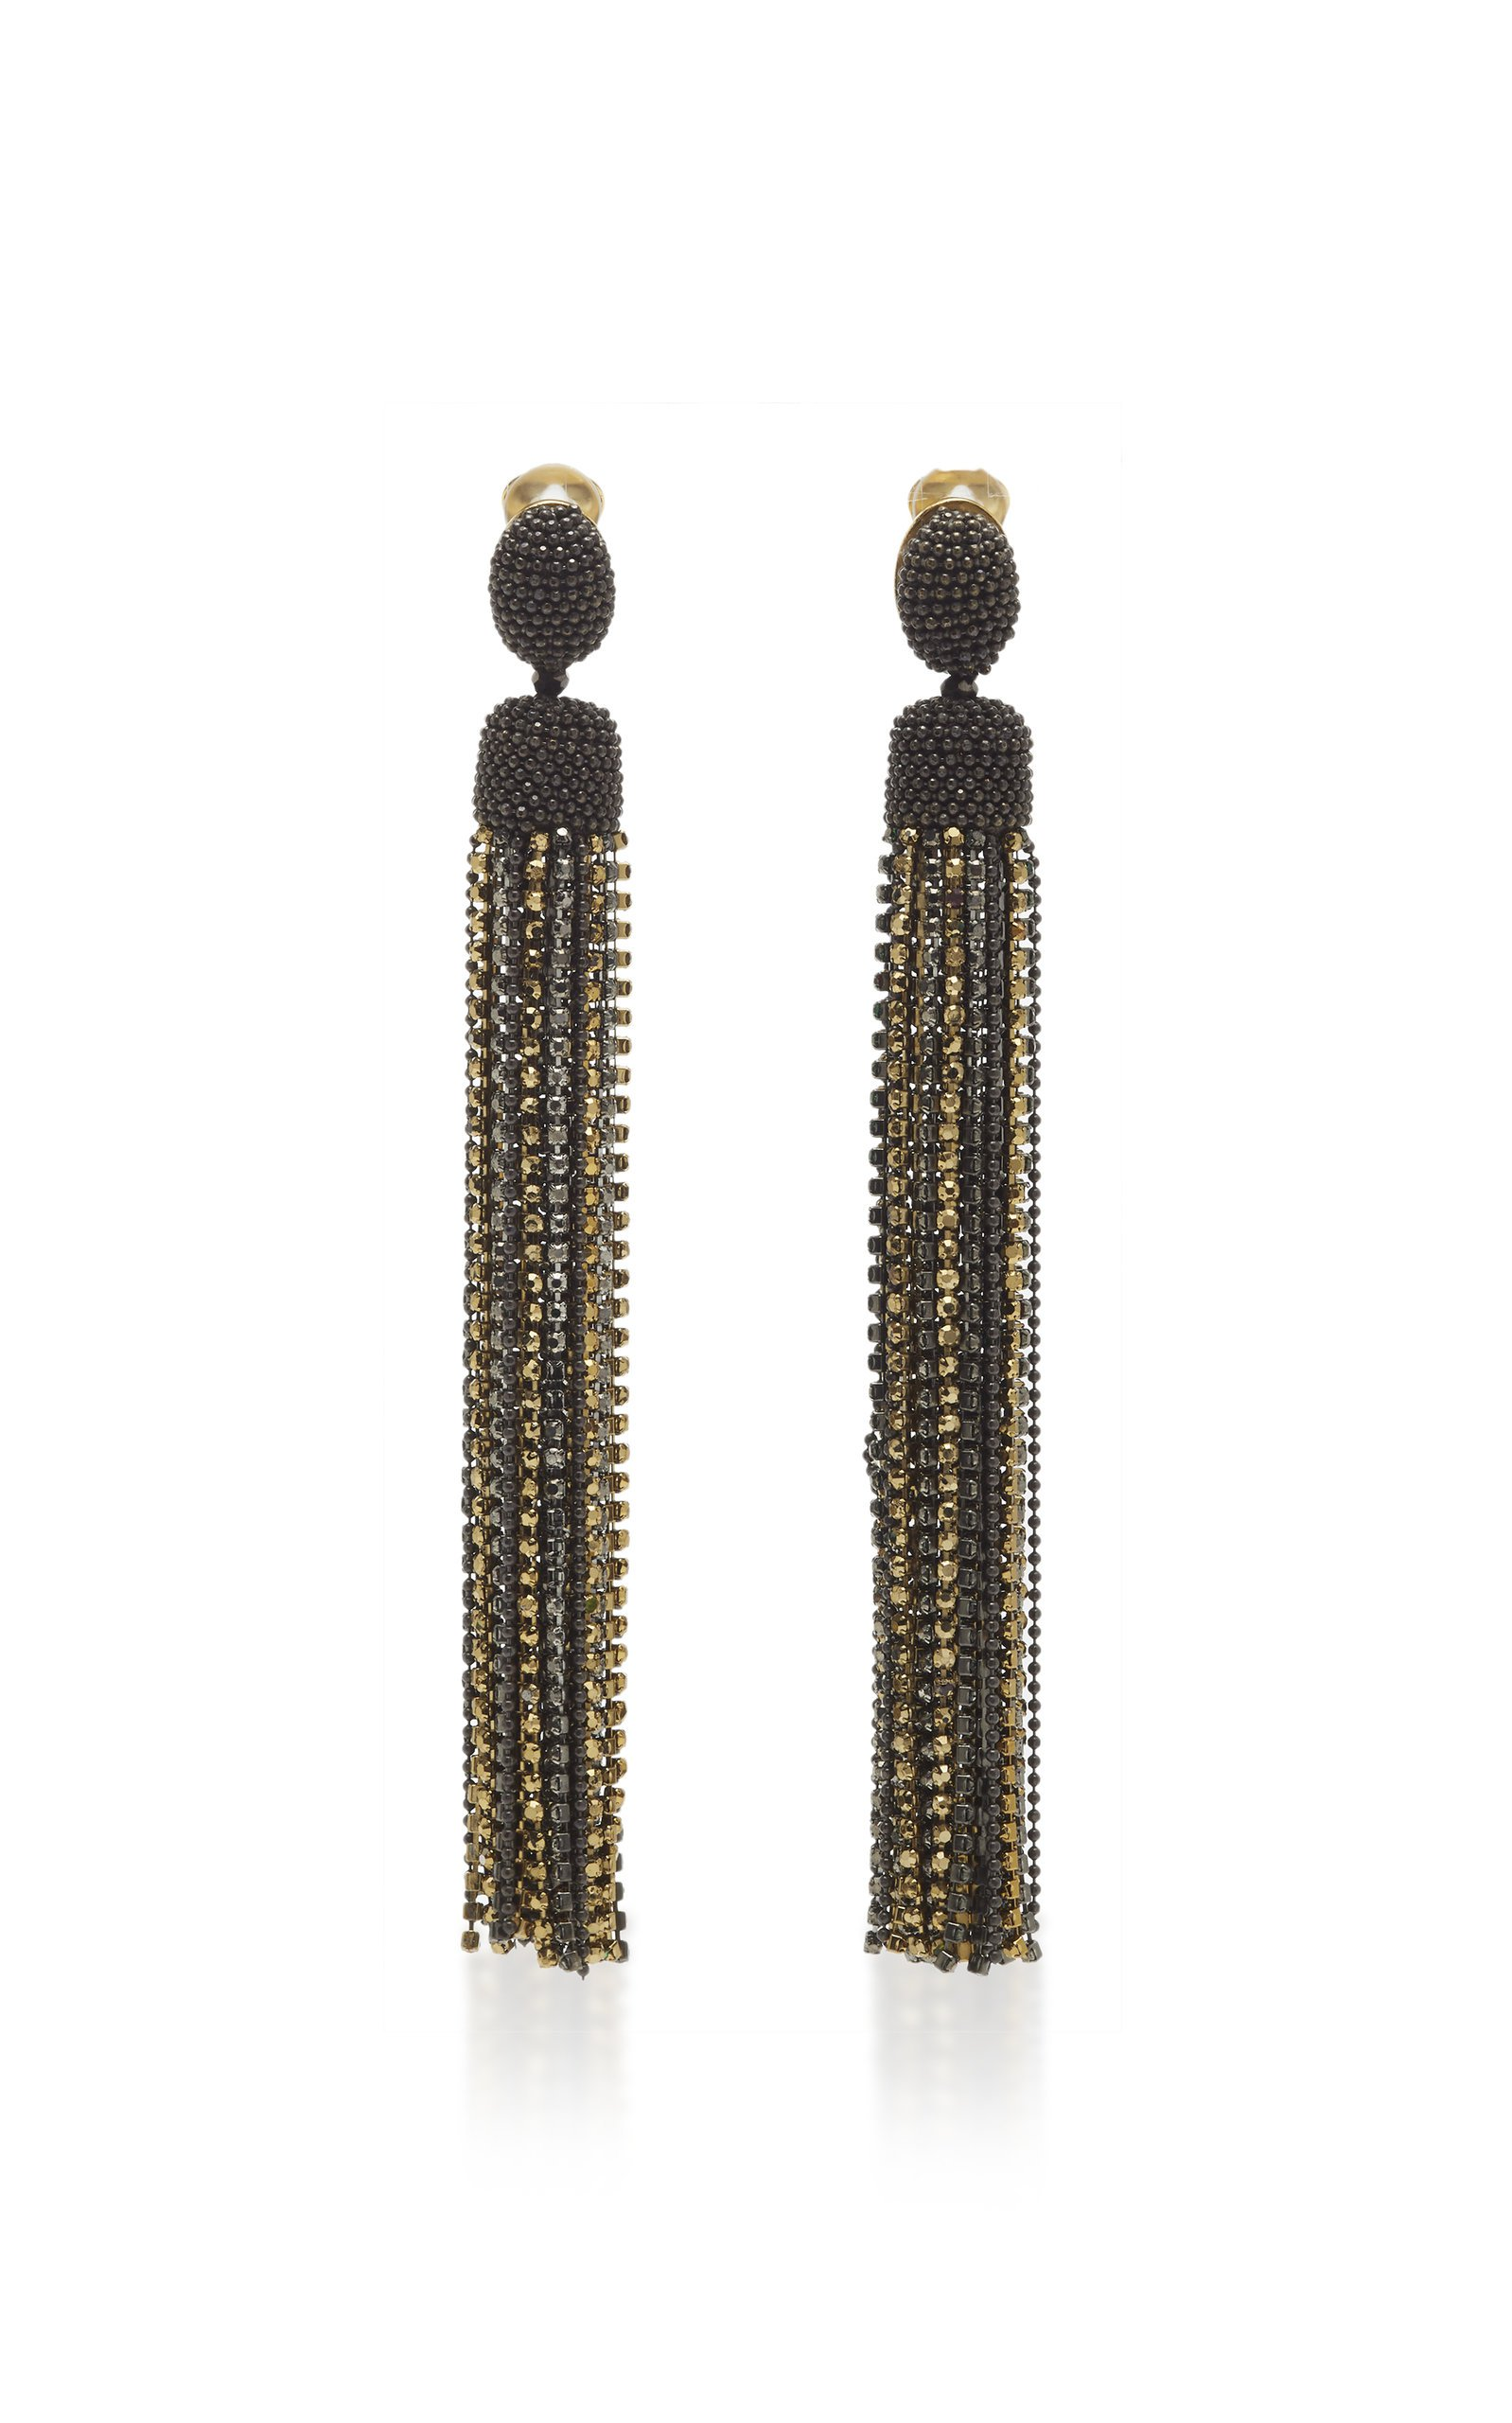 Crystal-Embellished Tassel Earrings by Oscar de la Renta | Moda Operandi